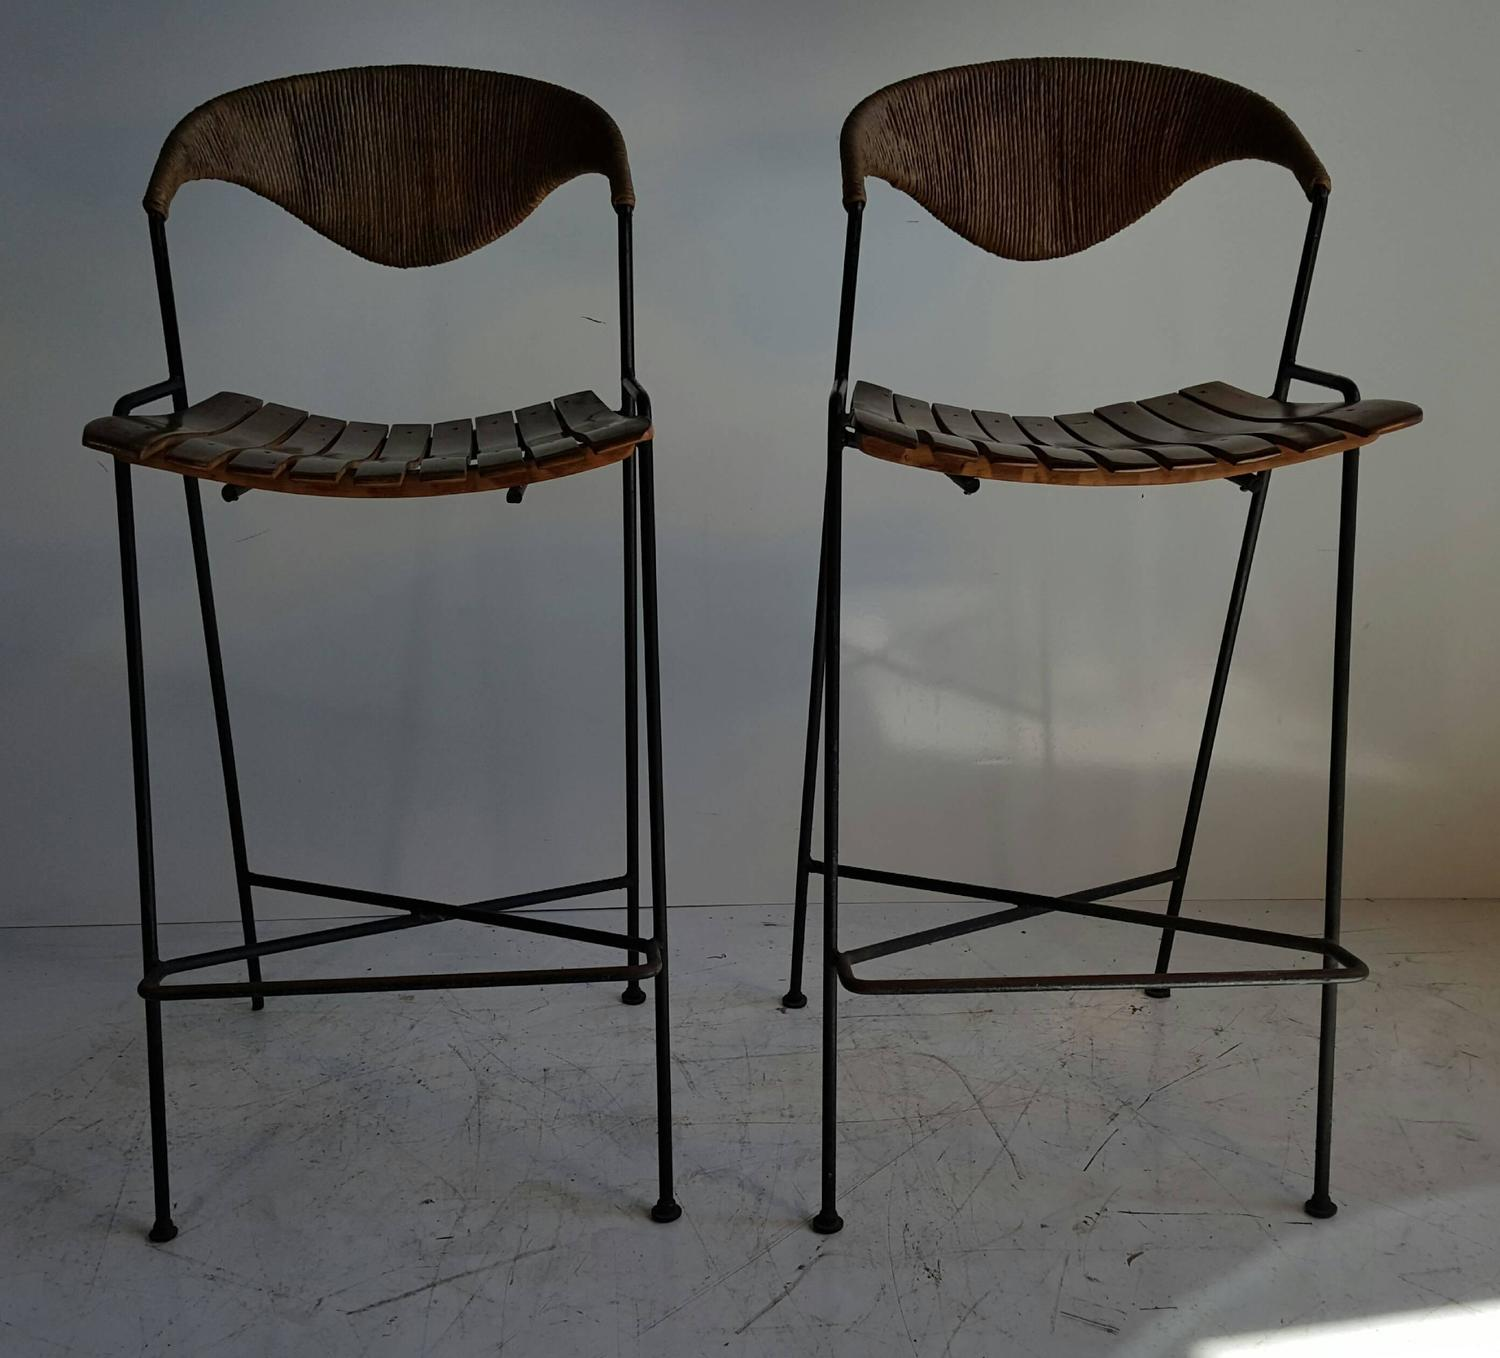 Classic Mid Century Modern Iron And Wood Bar Stools By